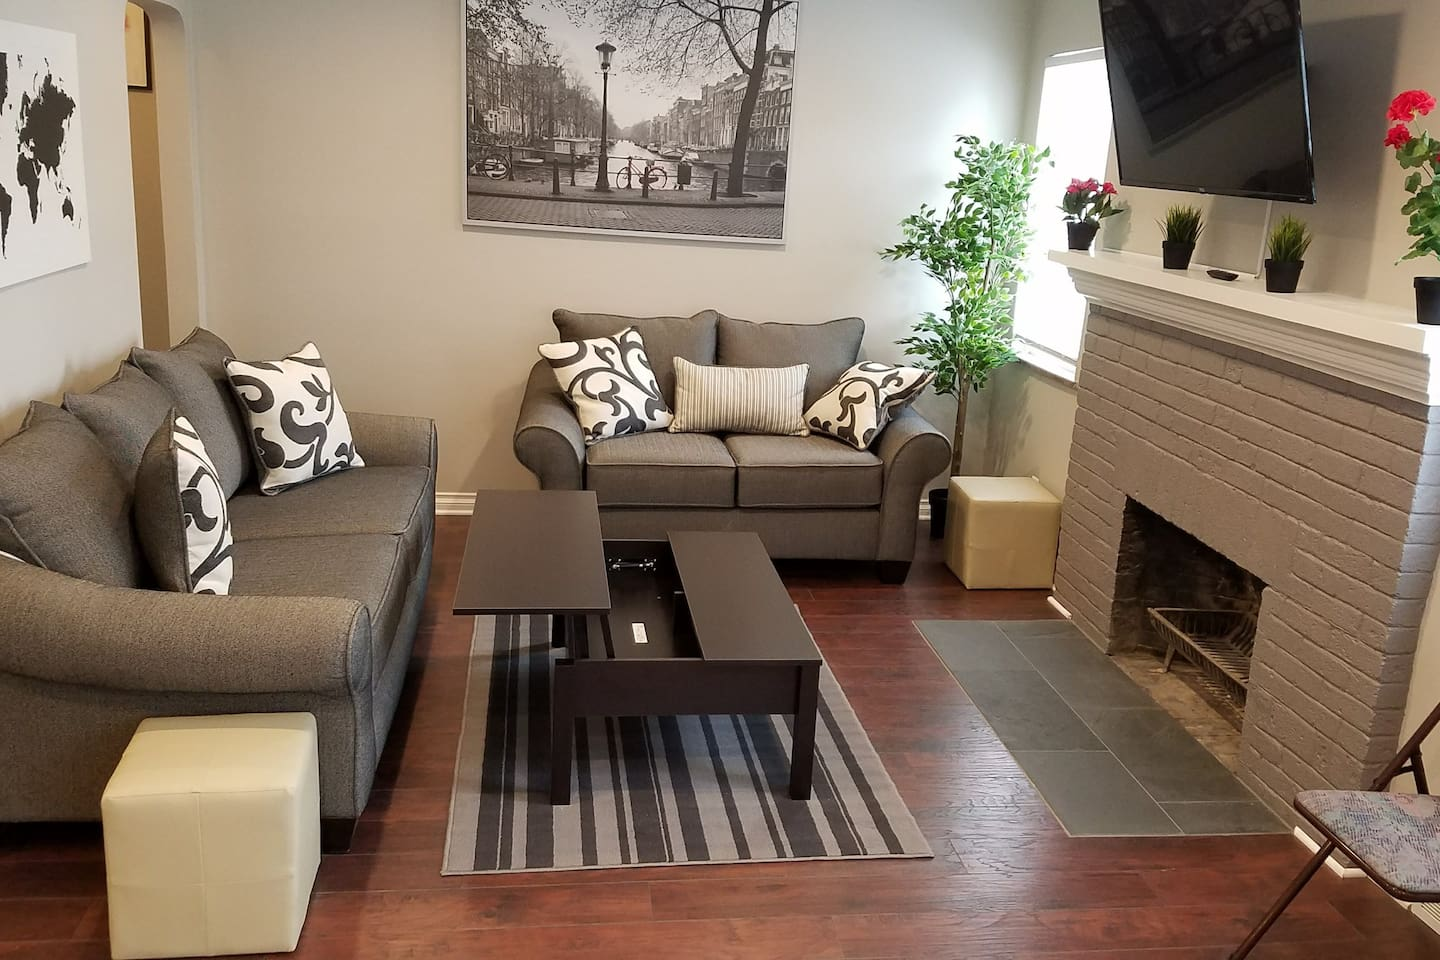 Comfortable living room with a trick coffee table for your laptop or a meal.